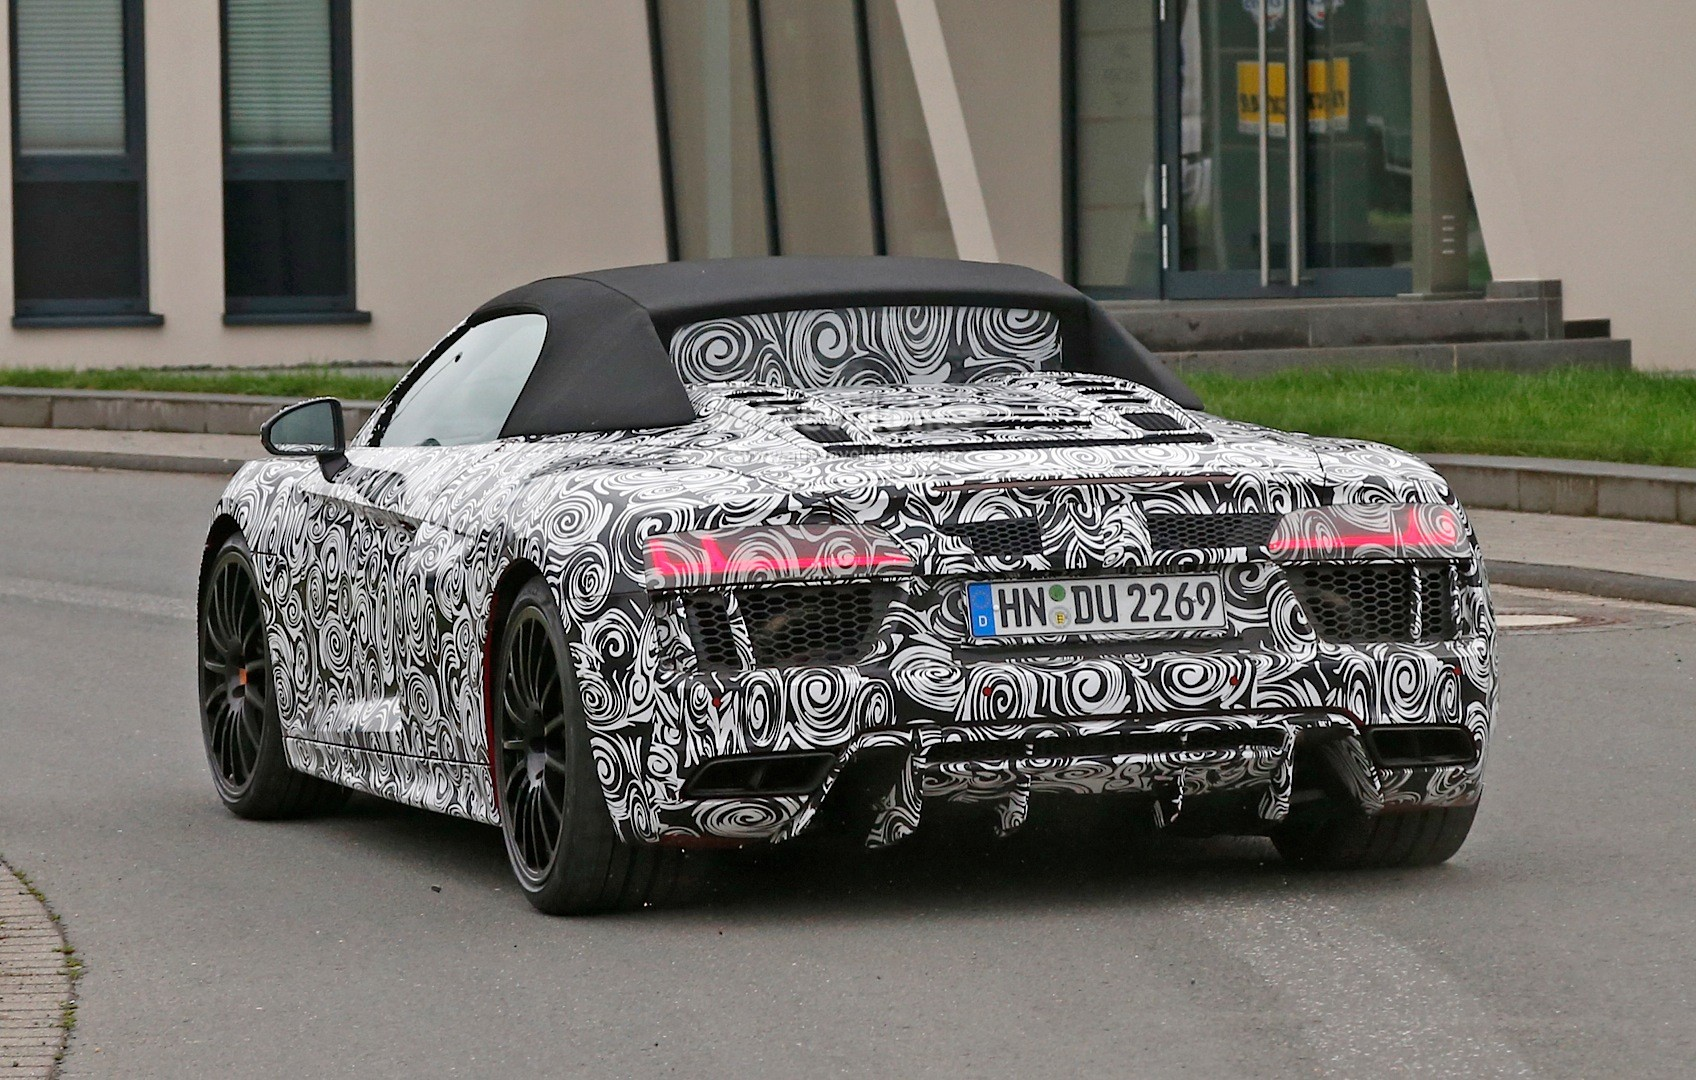 Spyshots Audi R V Spyder Spied For The First Time - Audi r8 v10 spyder